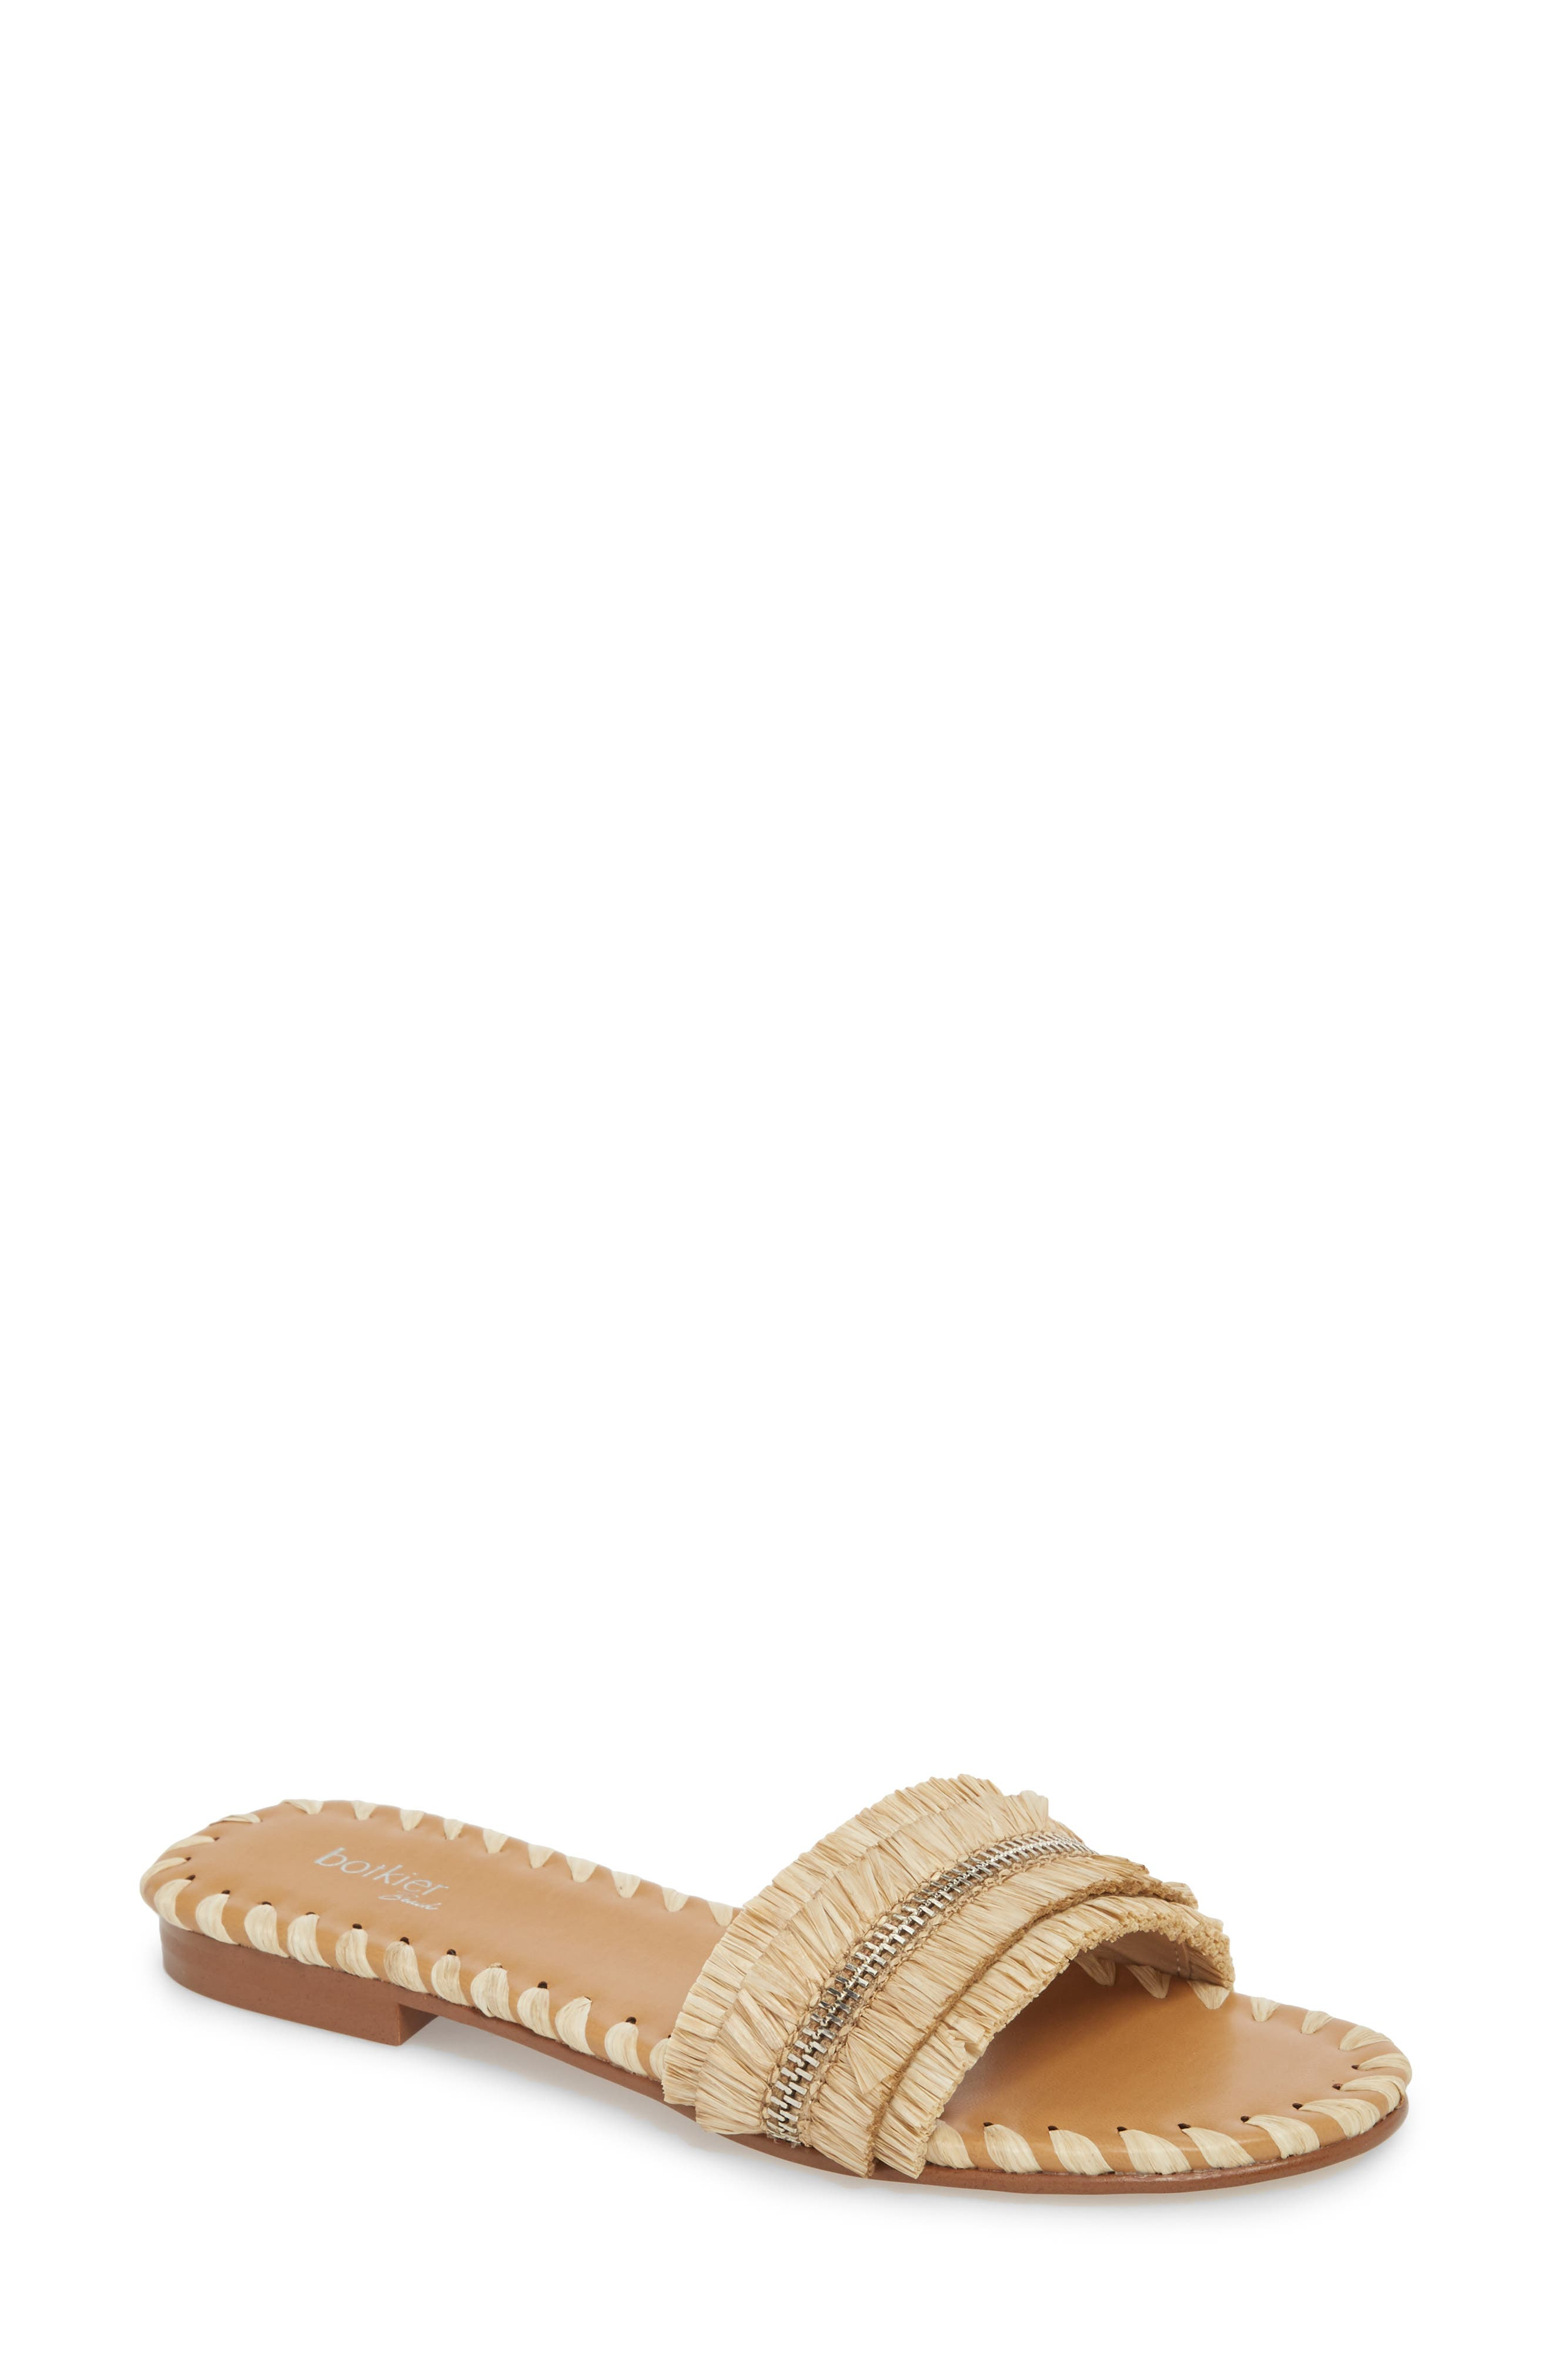 Bonnie Slide Sandal,                             Main thumbnail 2, color,